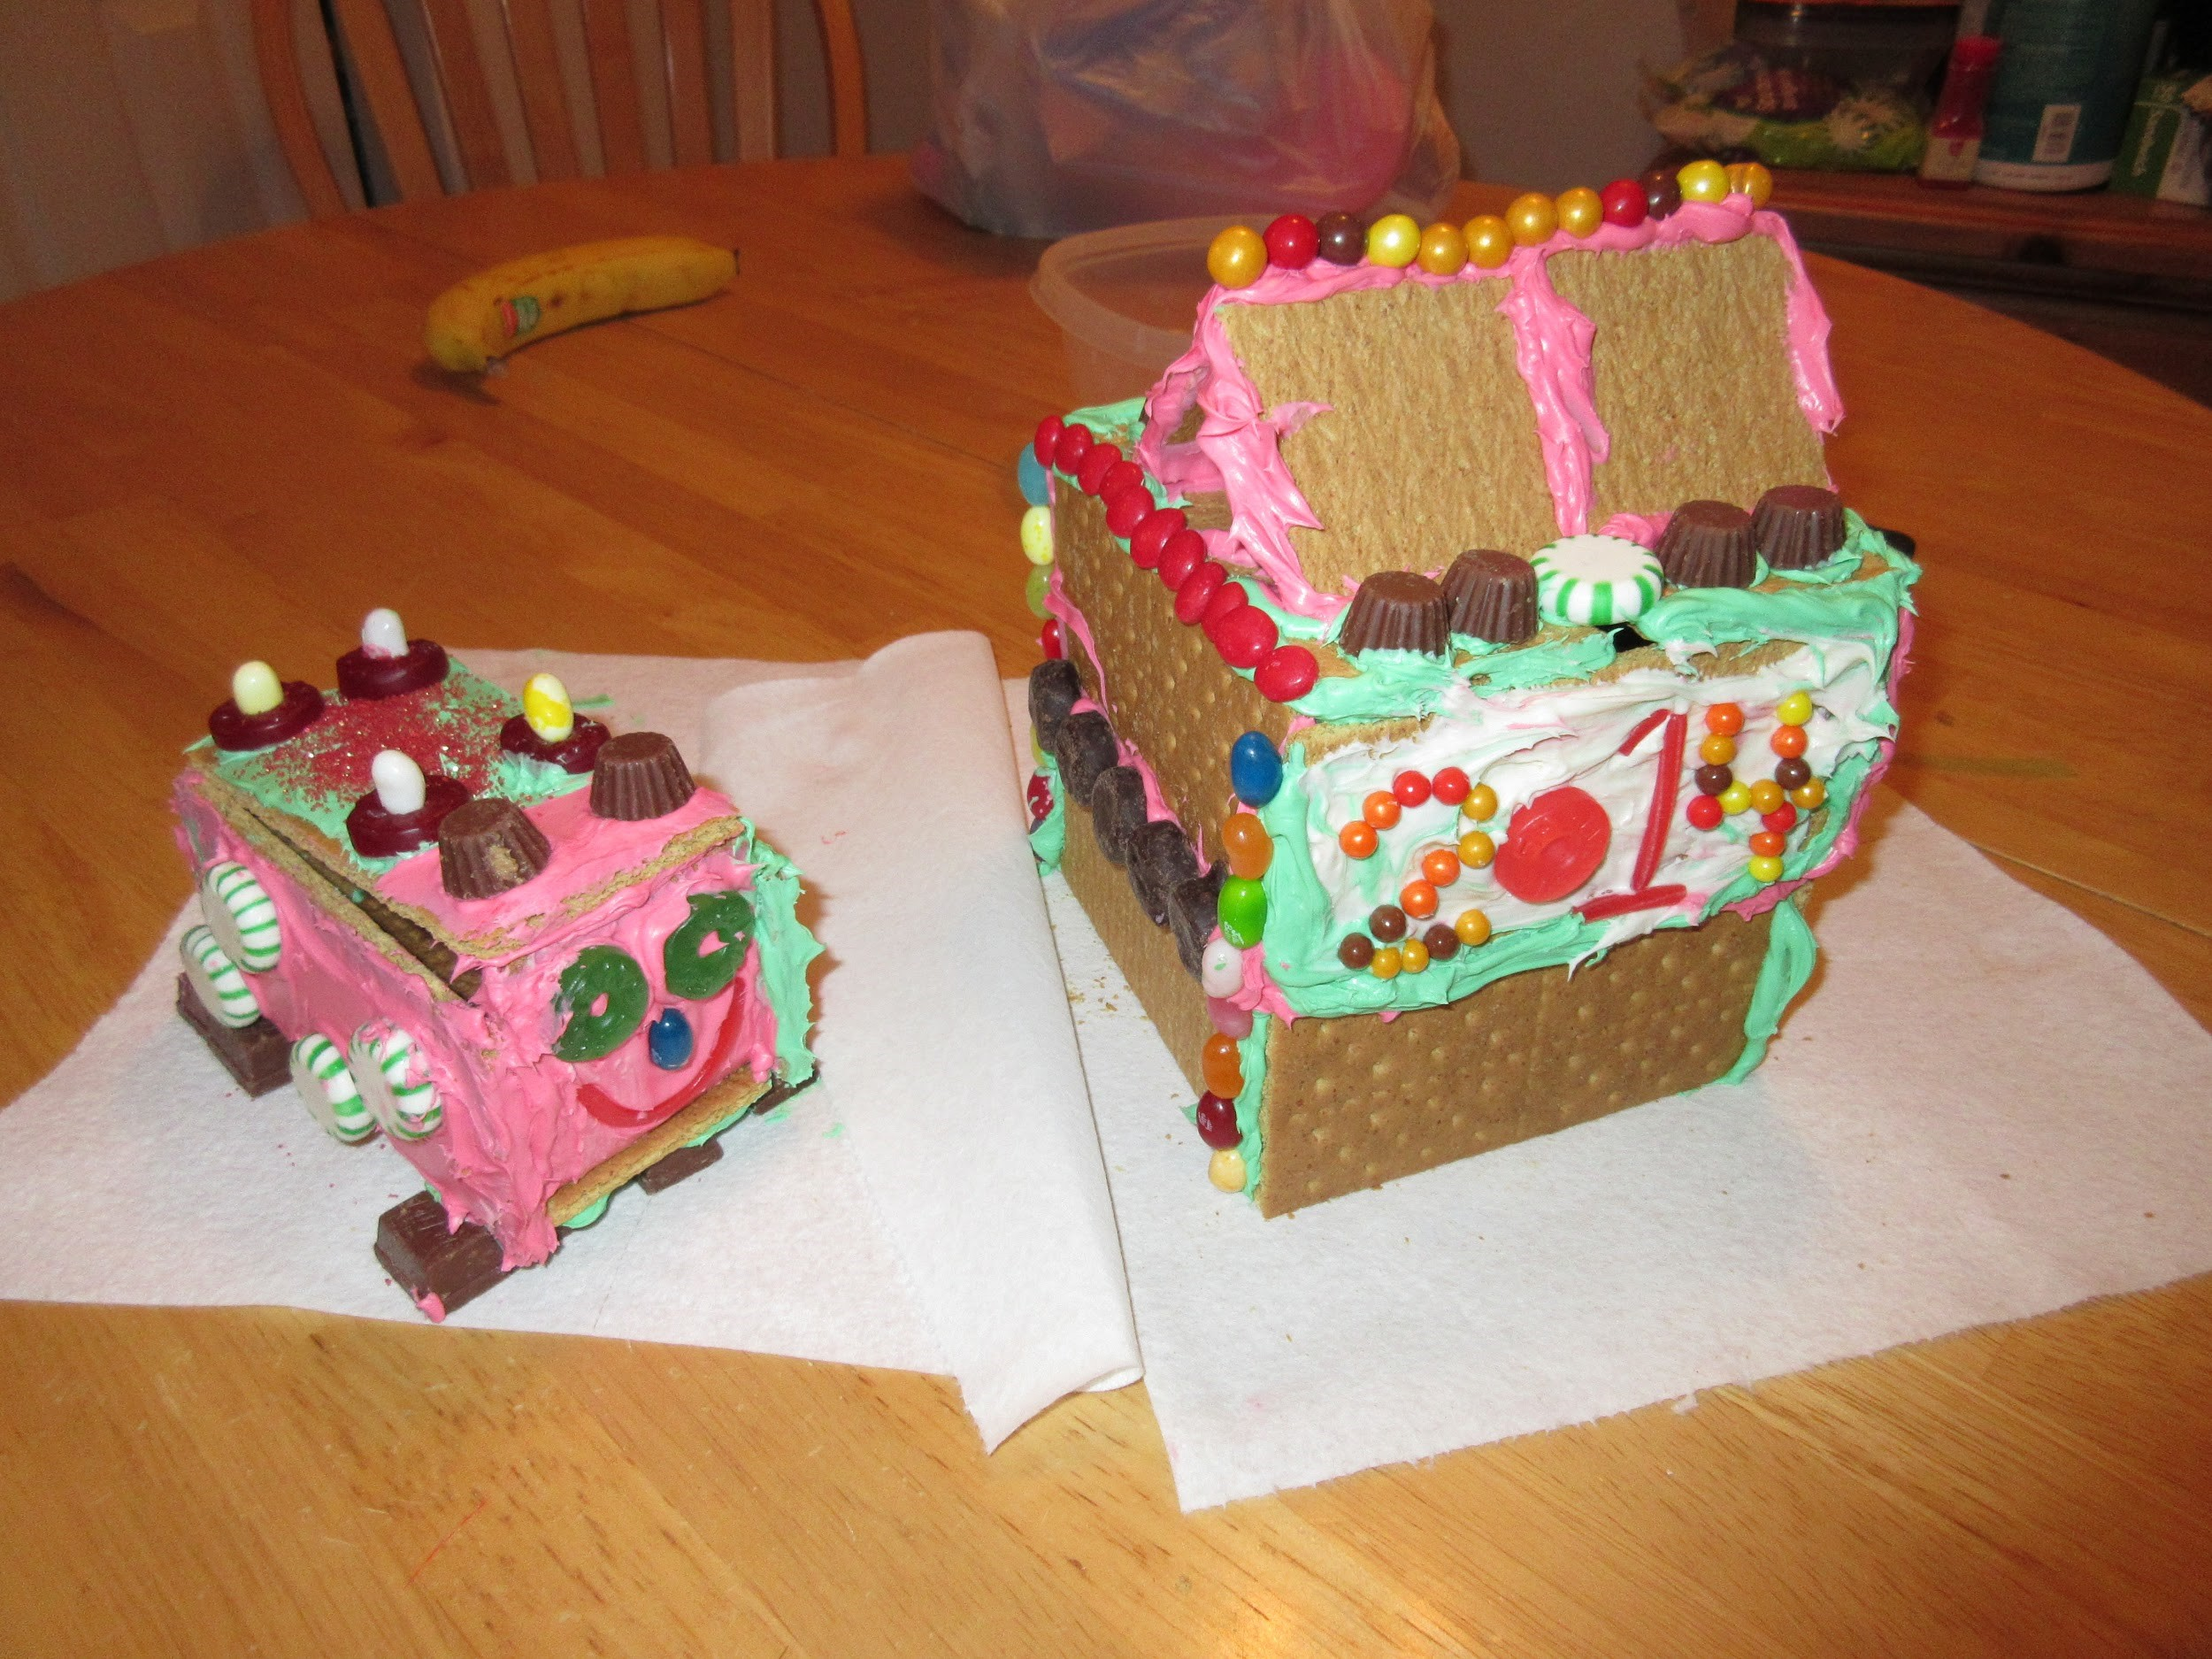 MaLee's completed gingerbread houses